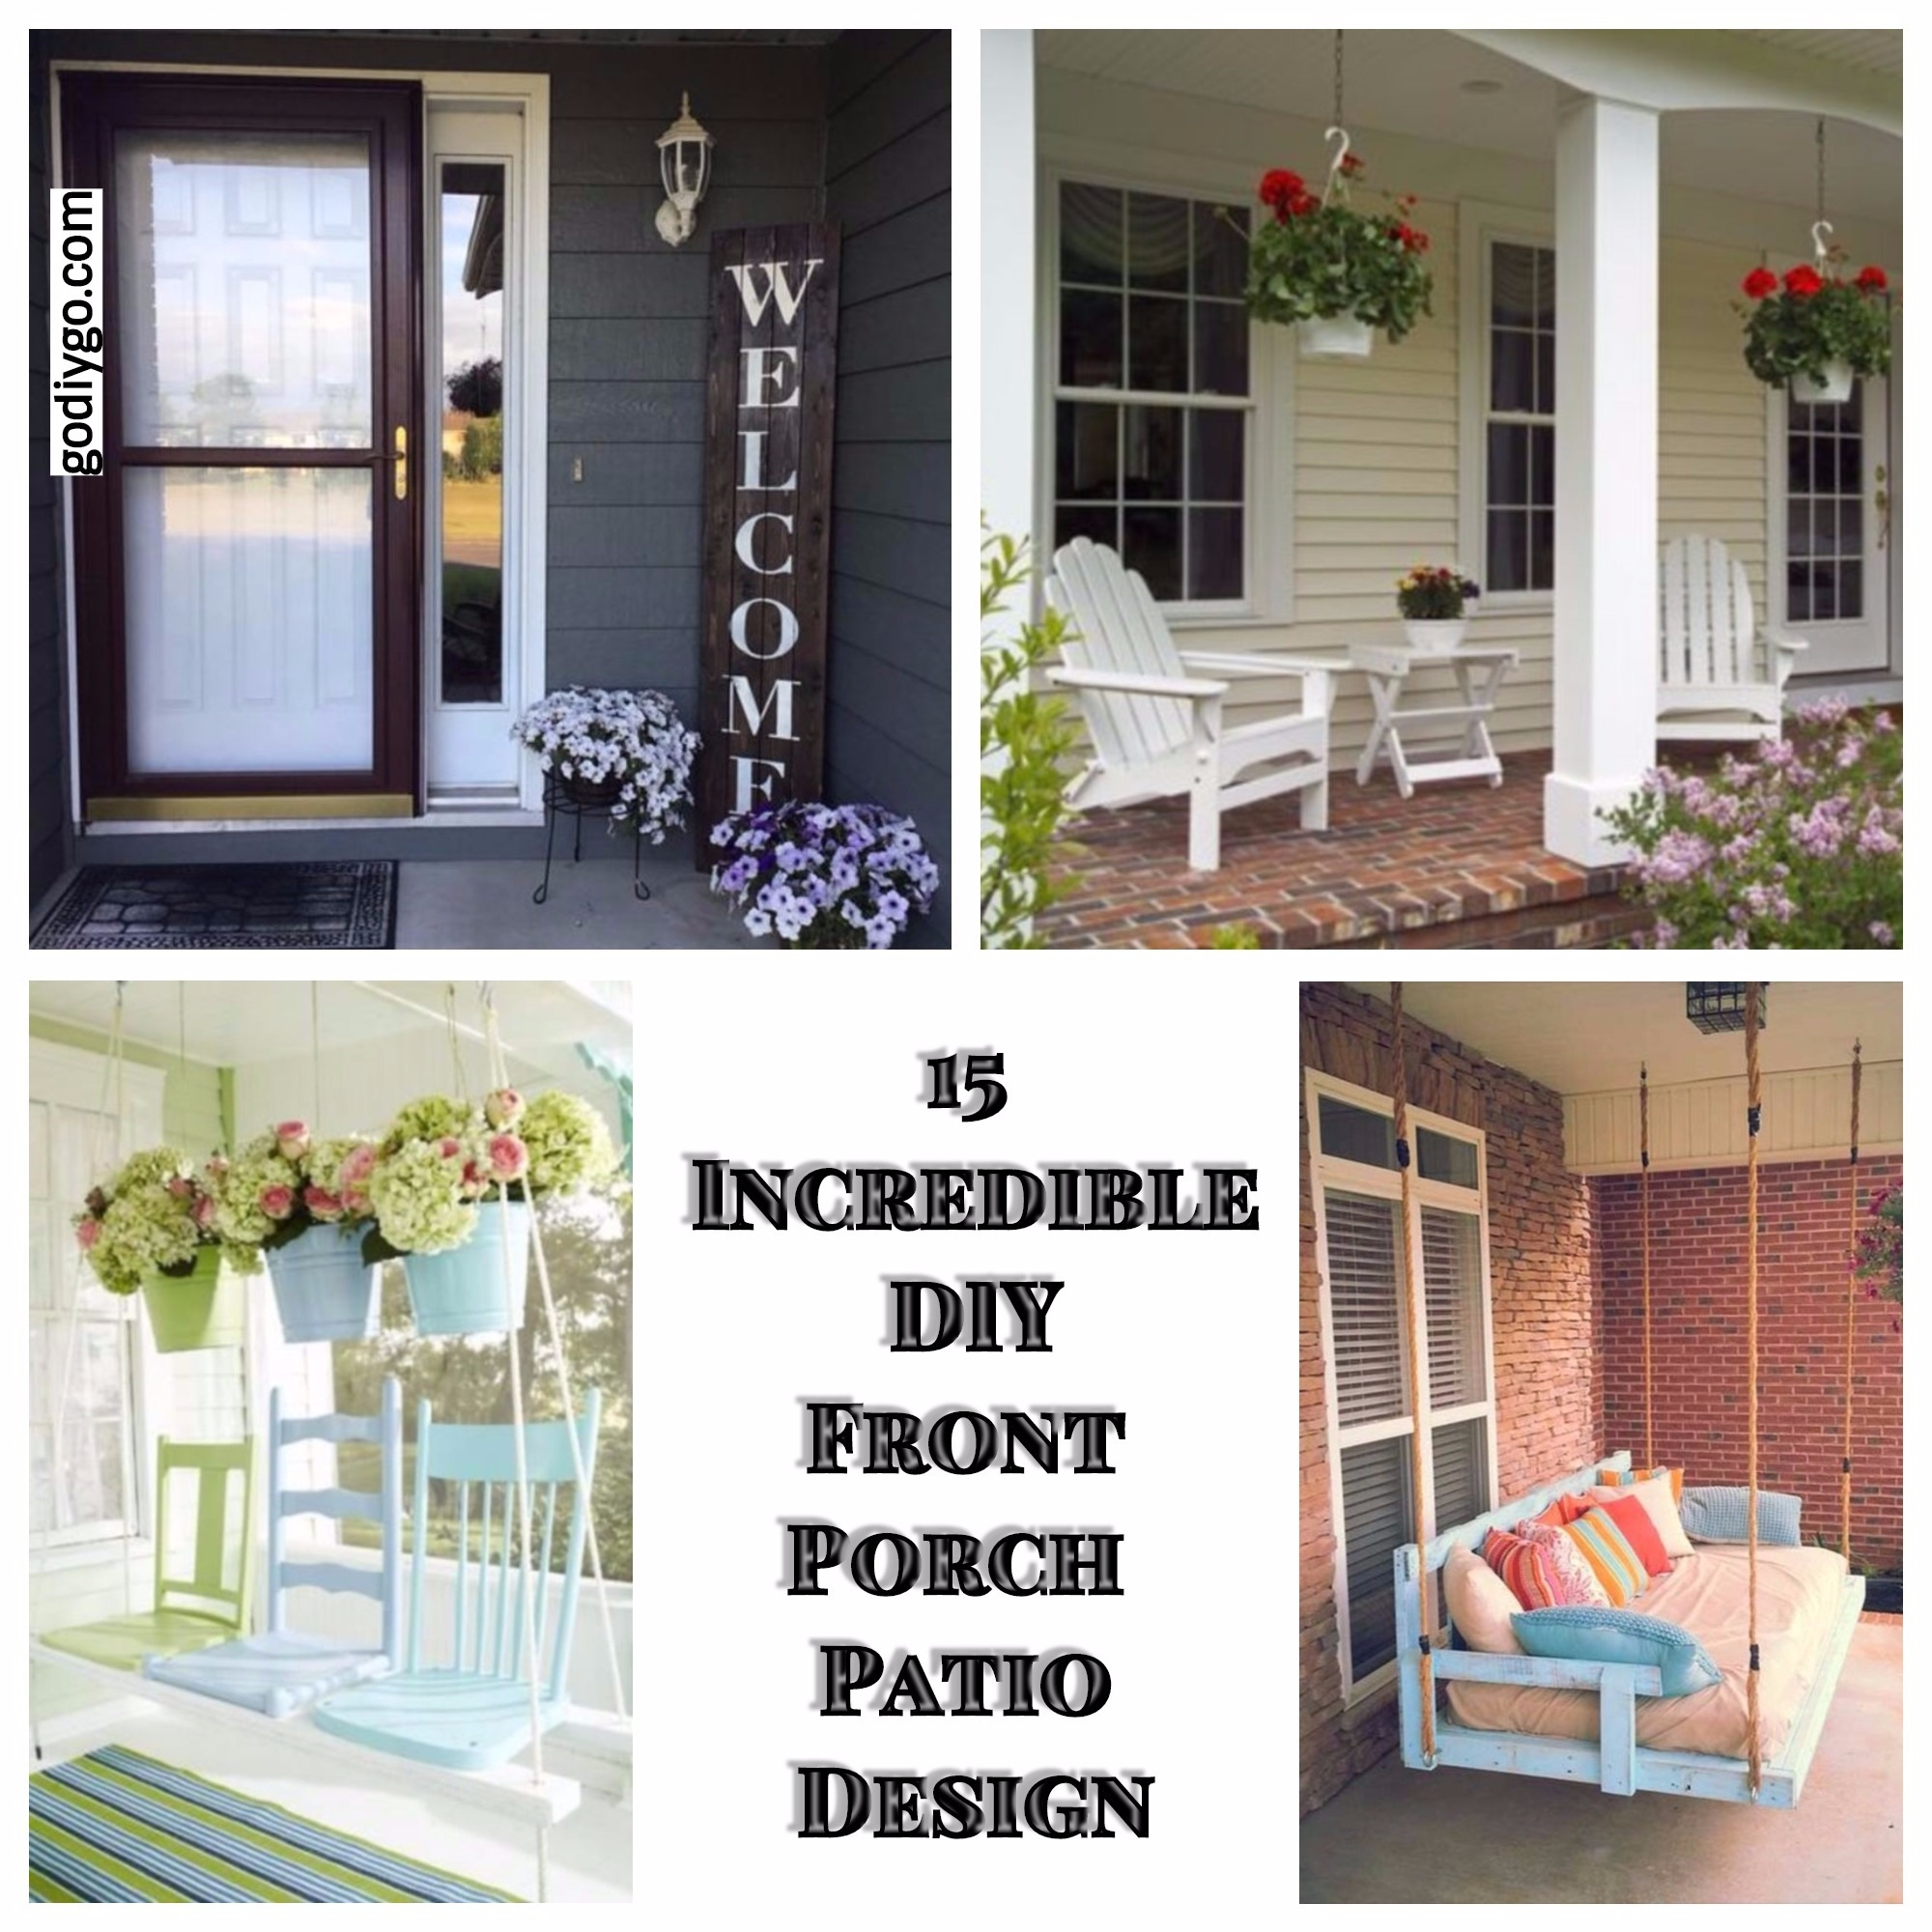 15 Incredible DIY Front Porch Patio Design